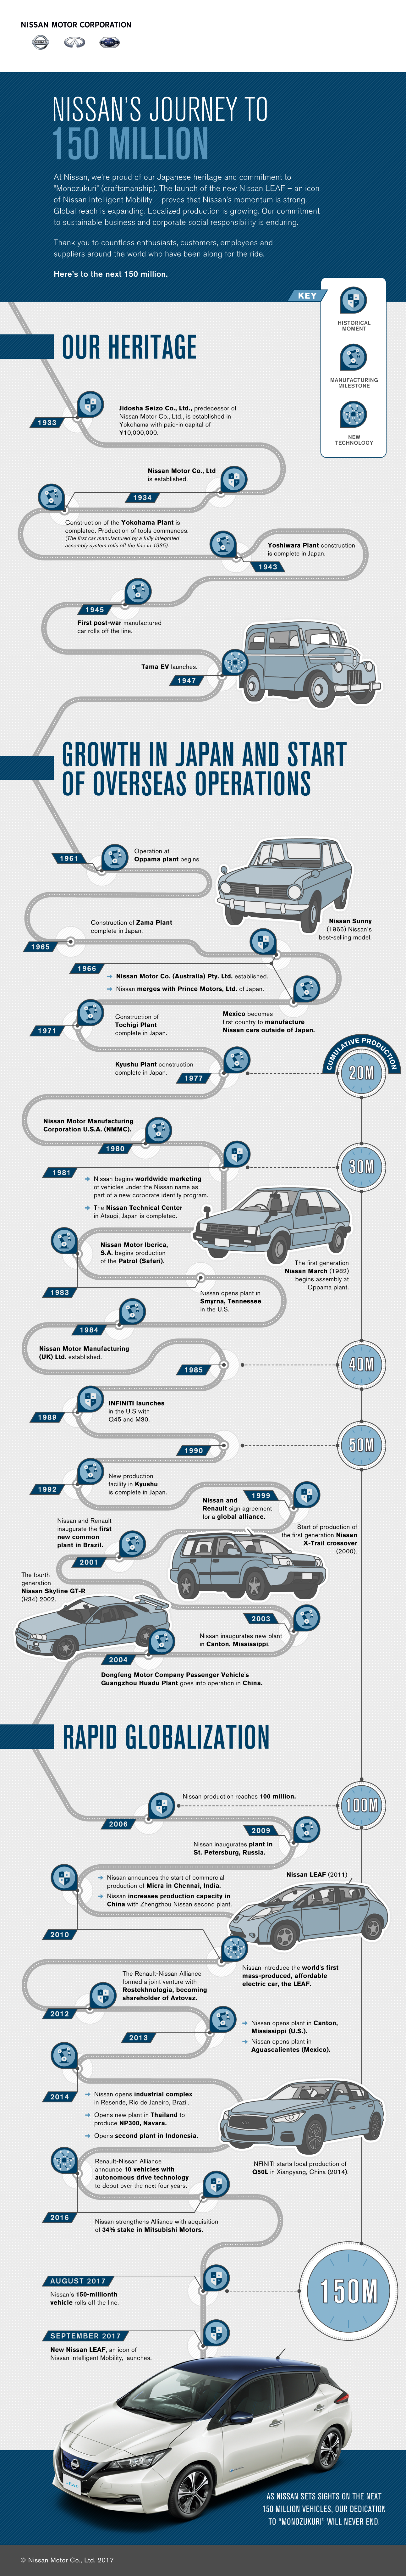 Nissan's Journey to 150M Infographic | Nissan | Makemark